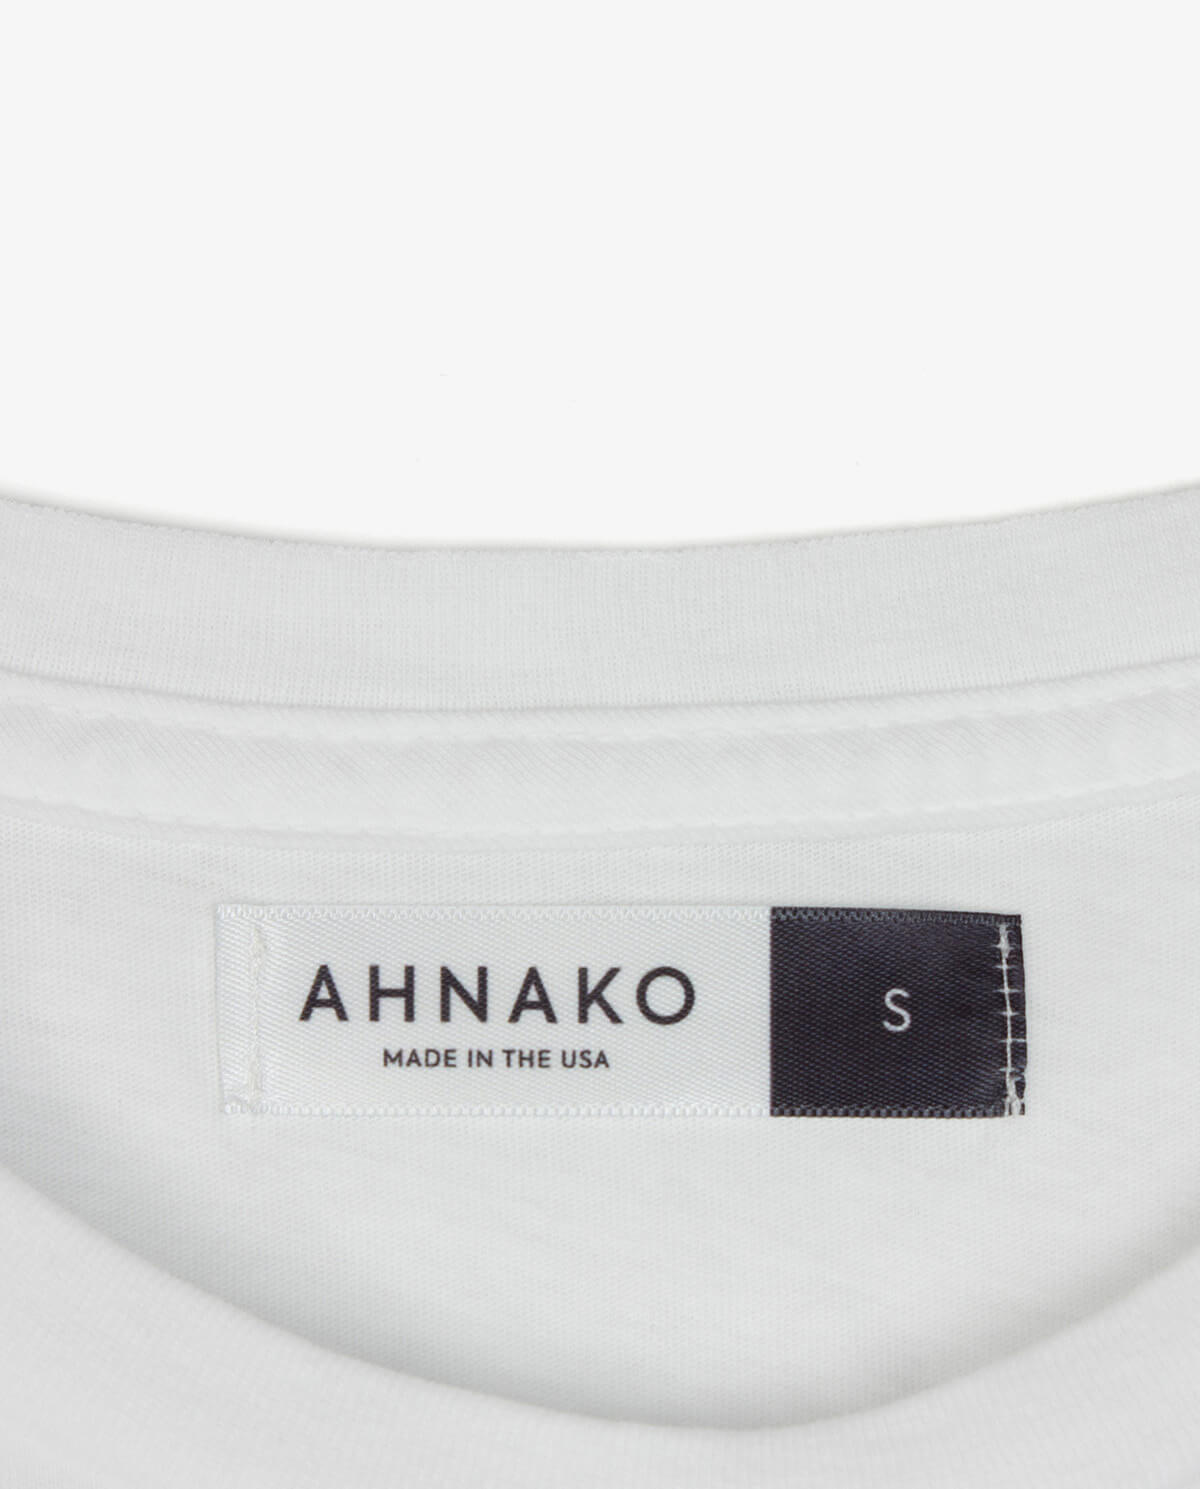 Ahnako Basic Tee Shirt - White - Clothing Tag